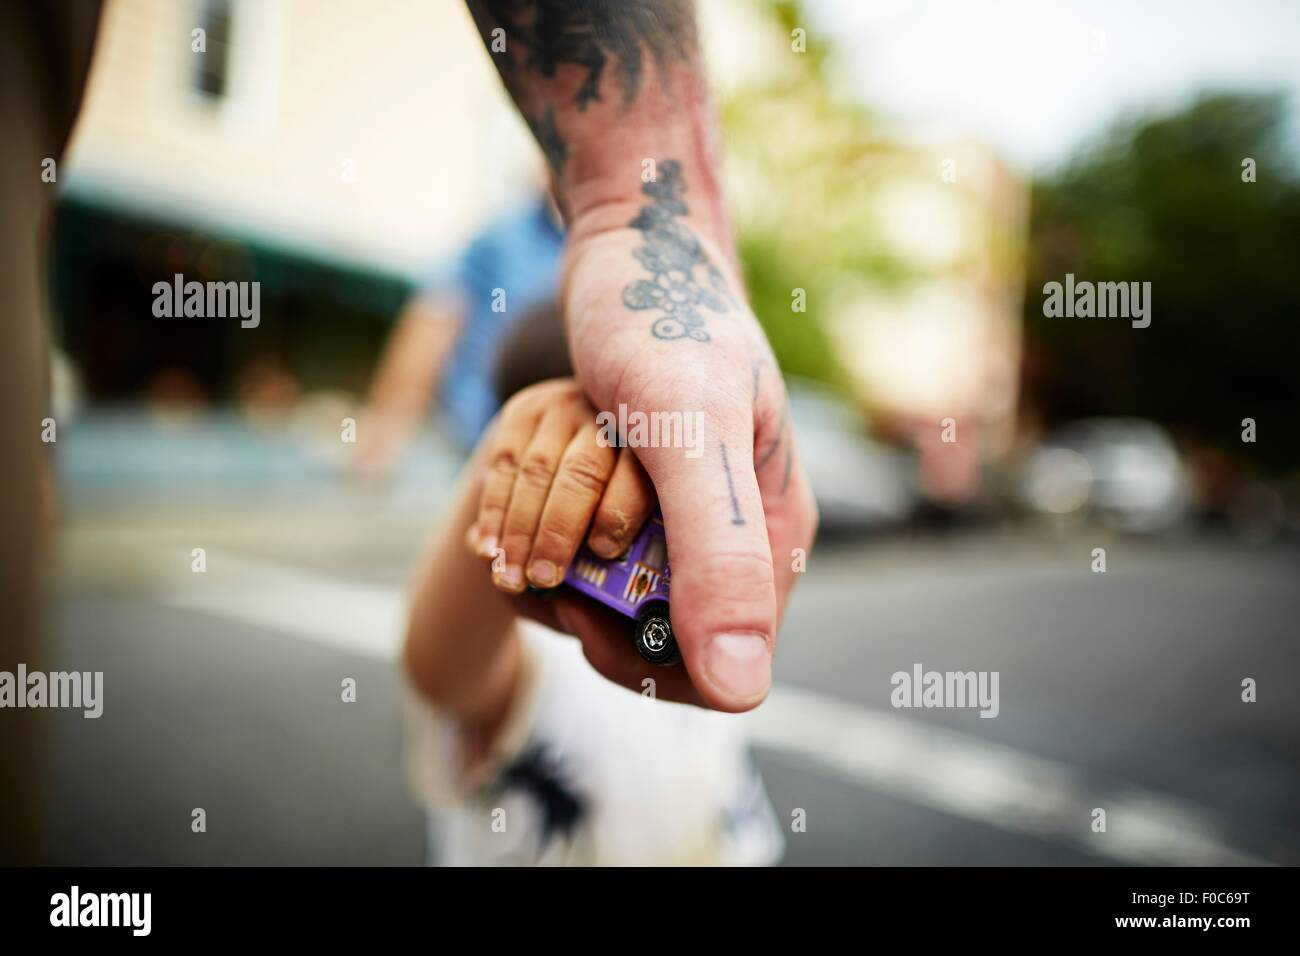 Close up of man holding boy's hand and toy crossing road - Stock Image